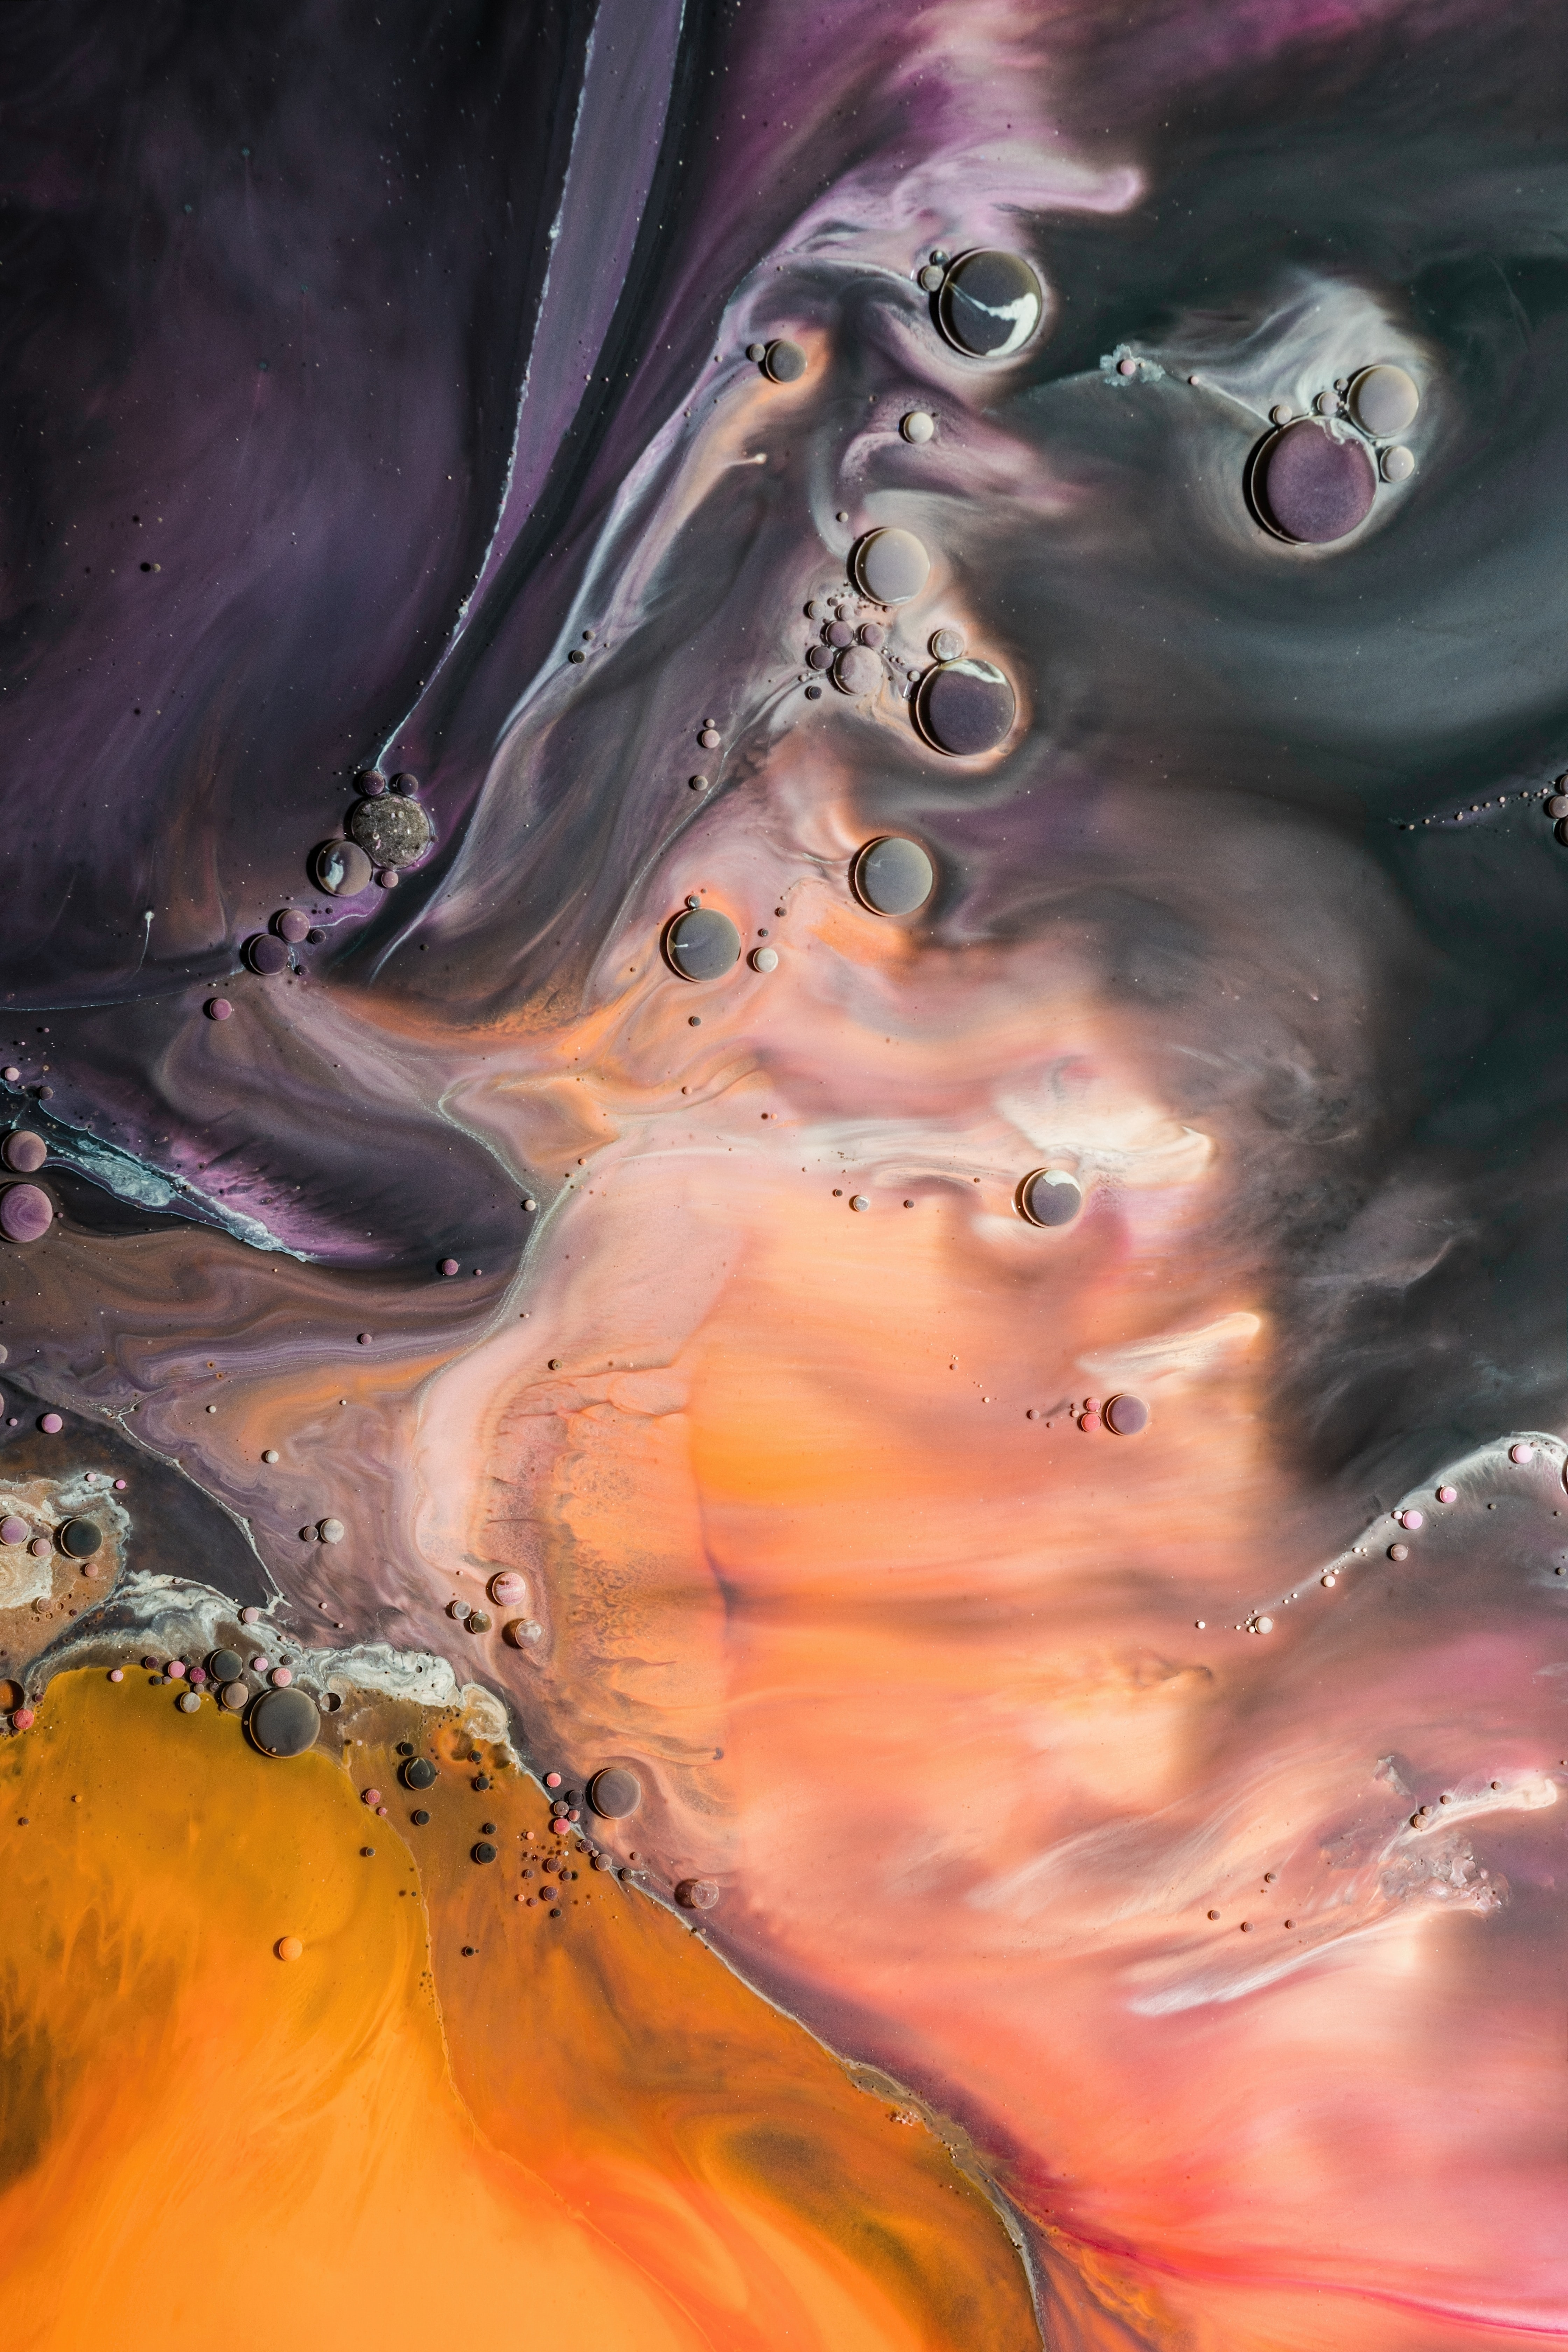 143679 download wallpaper Abstract, Paint, Liquid, Divorces, Drops screensavers and pictures for free